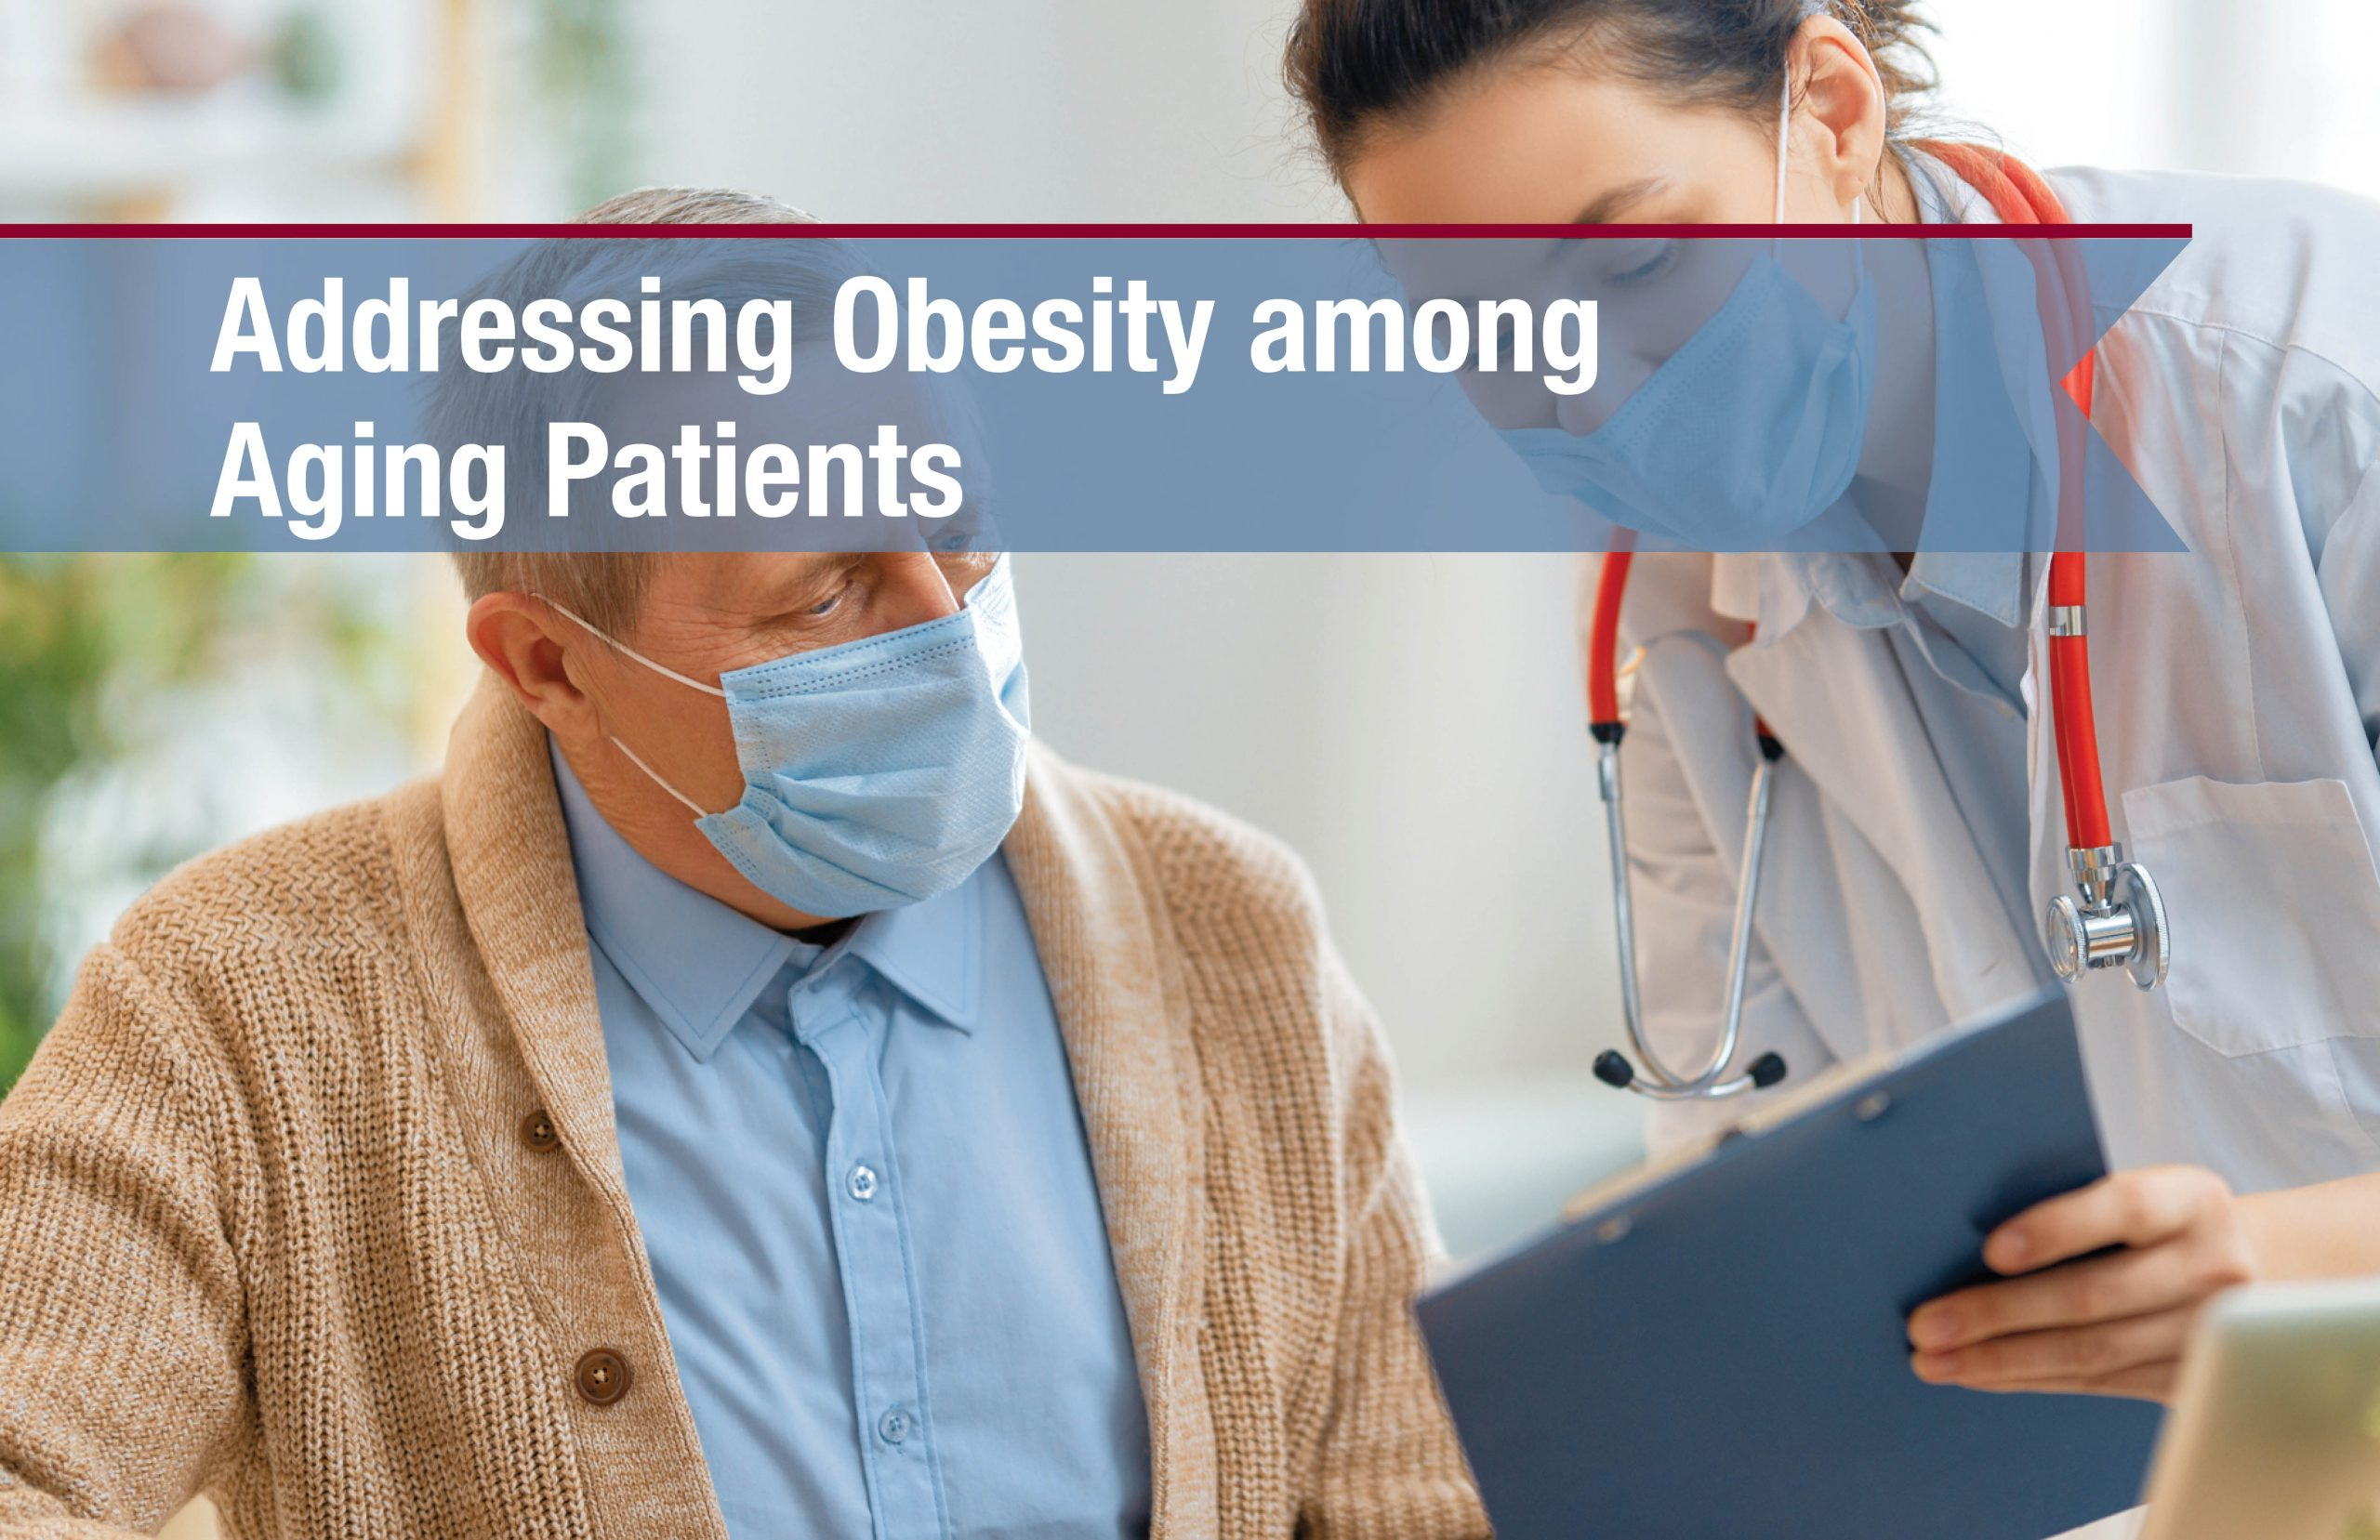 Obesity Among Aging Patients